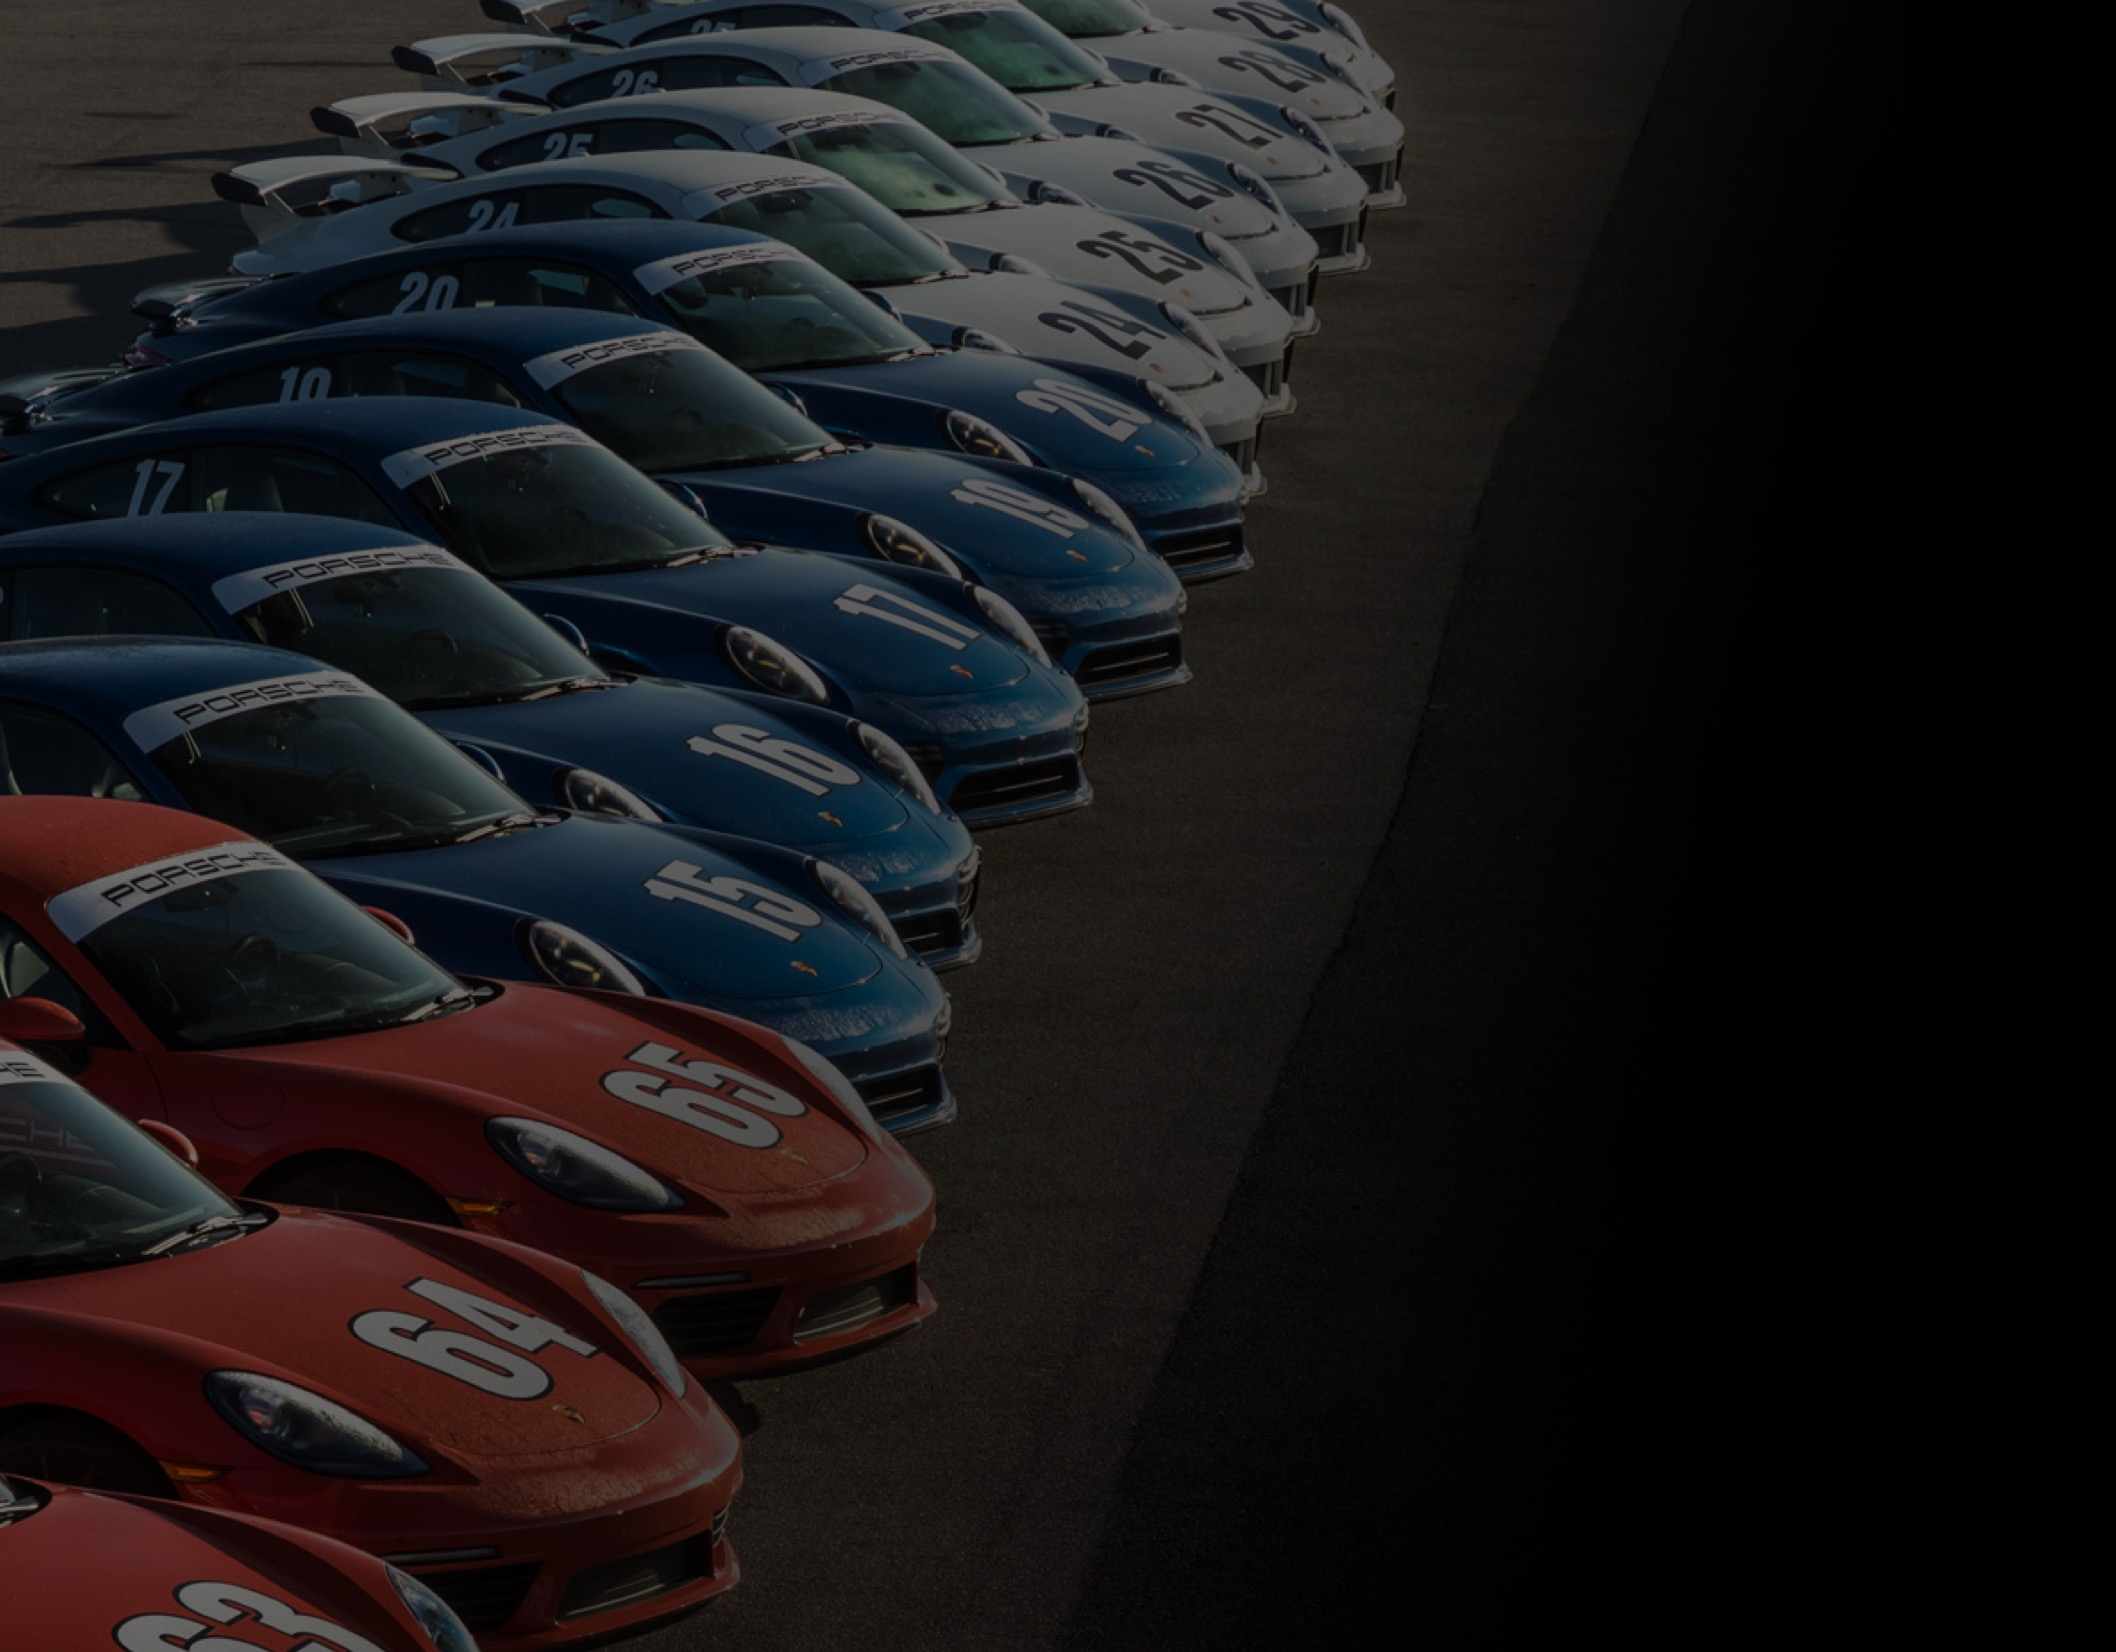 Itinerary background image - red, white and blue porsches lined up